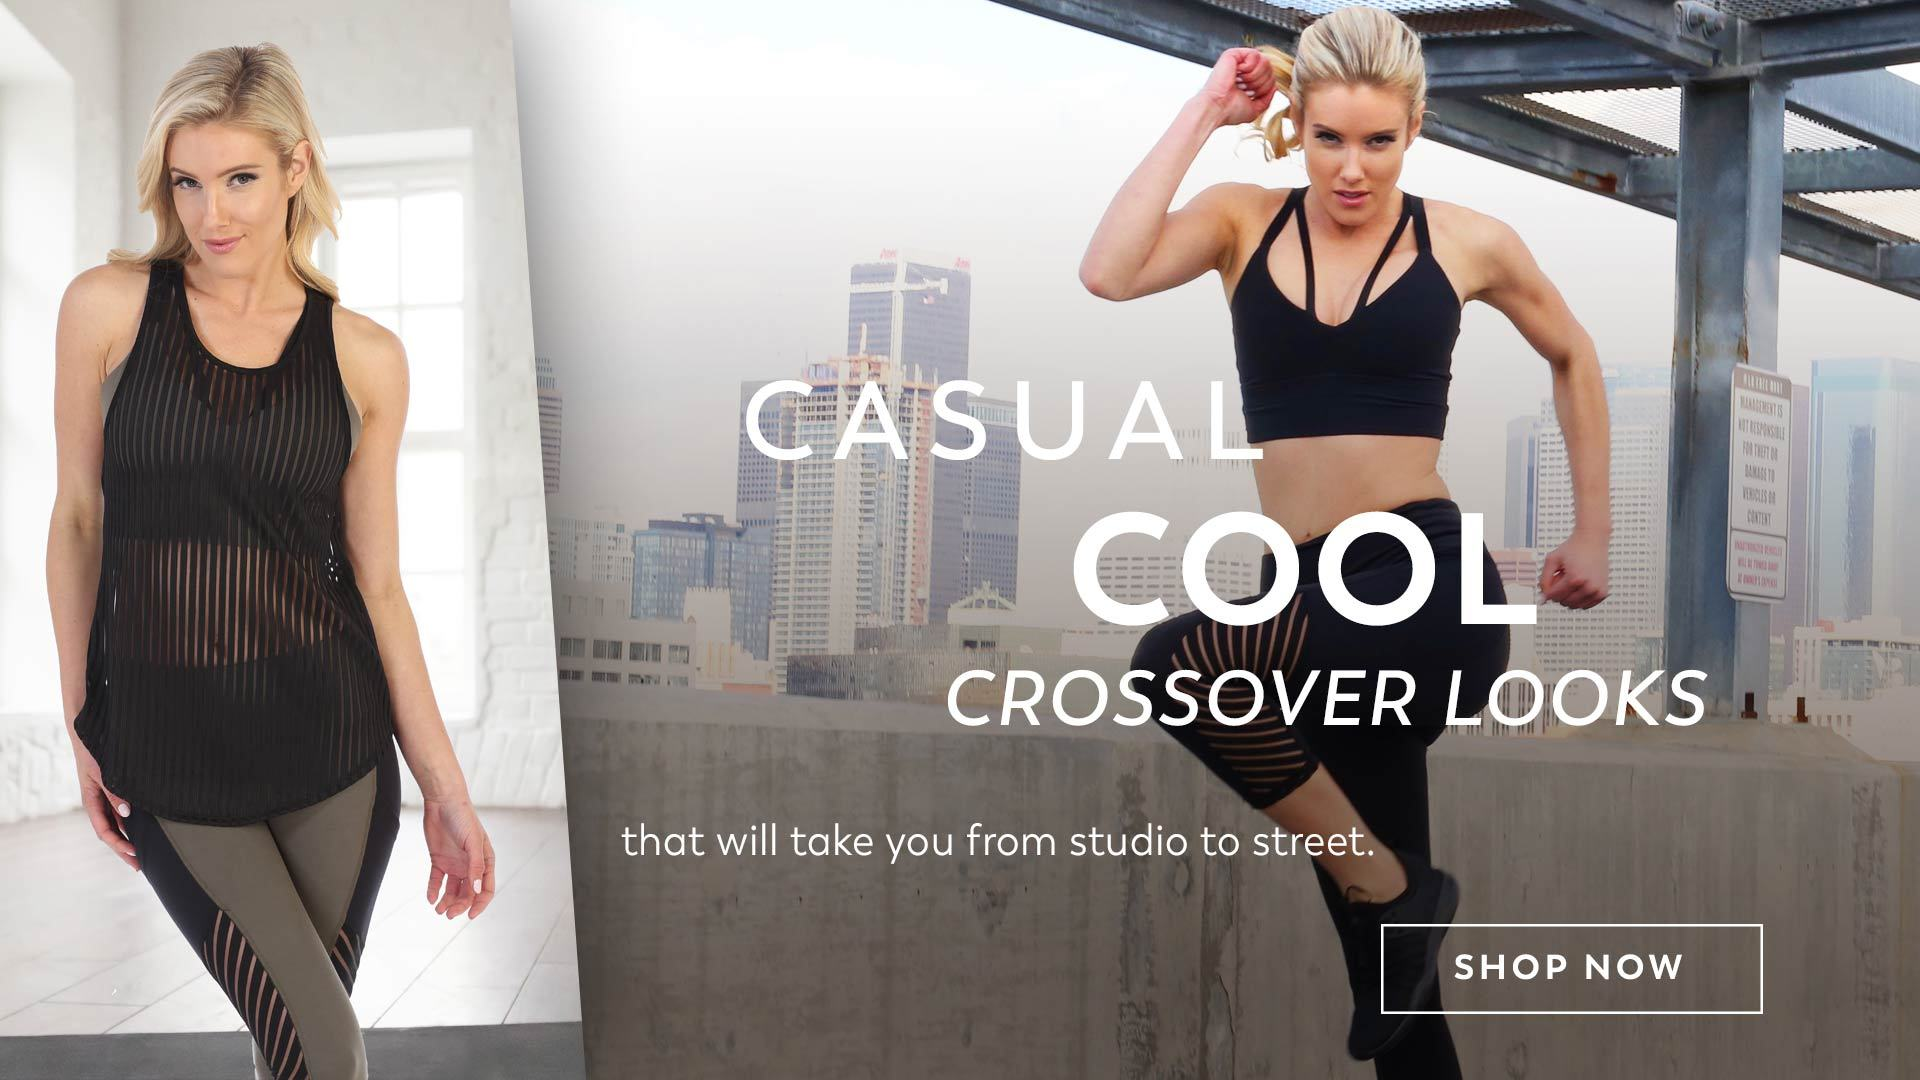 New Colors Best Selling Yoga Clothes, Performance Activewear Tops, Tanks, Bottoms, Capris Leggings, Sports Bras